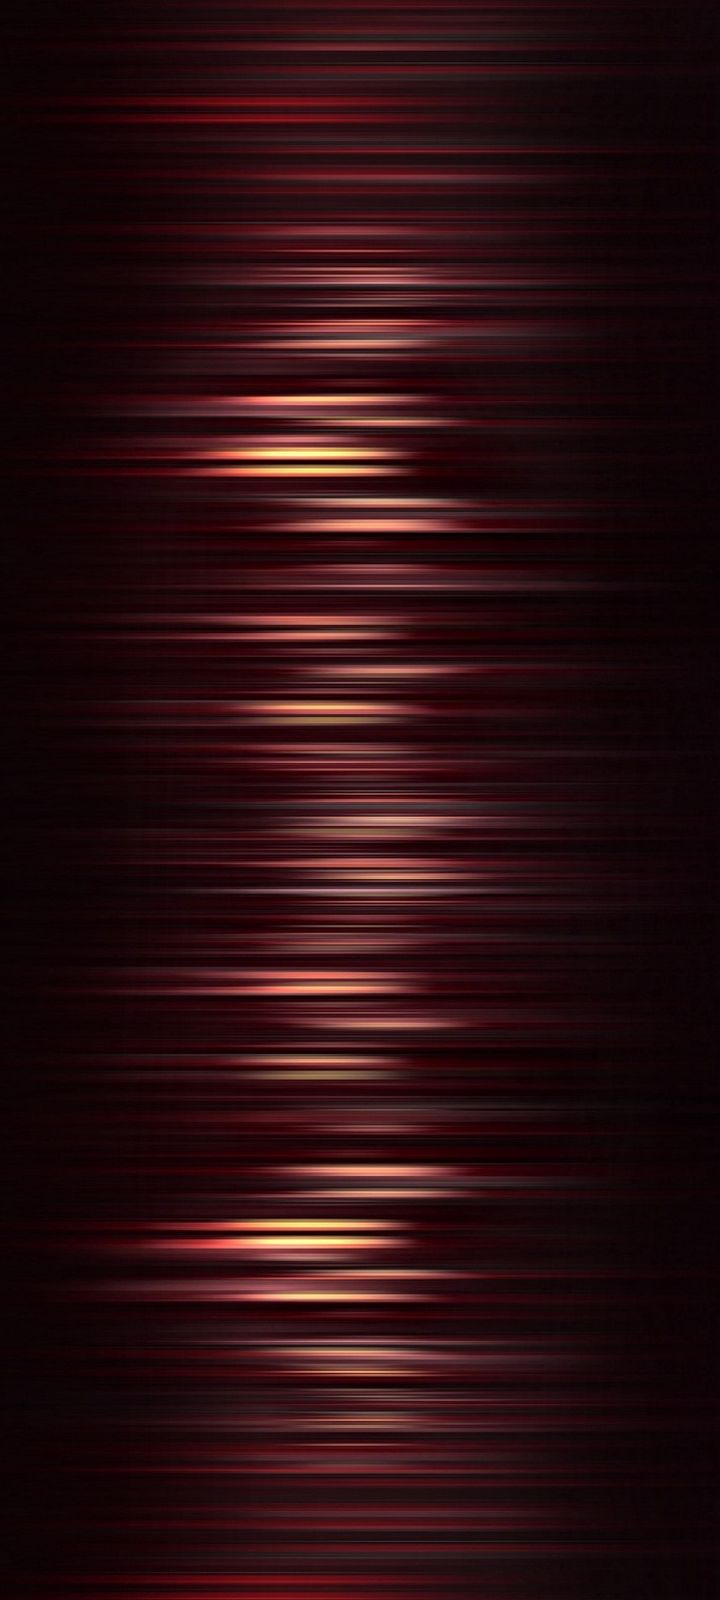 Lines Abstraction Light Wallpaper 720x1600